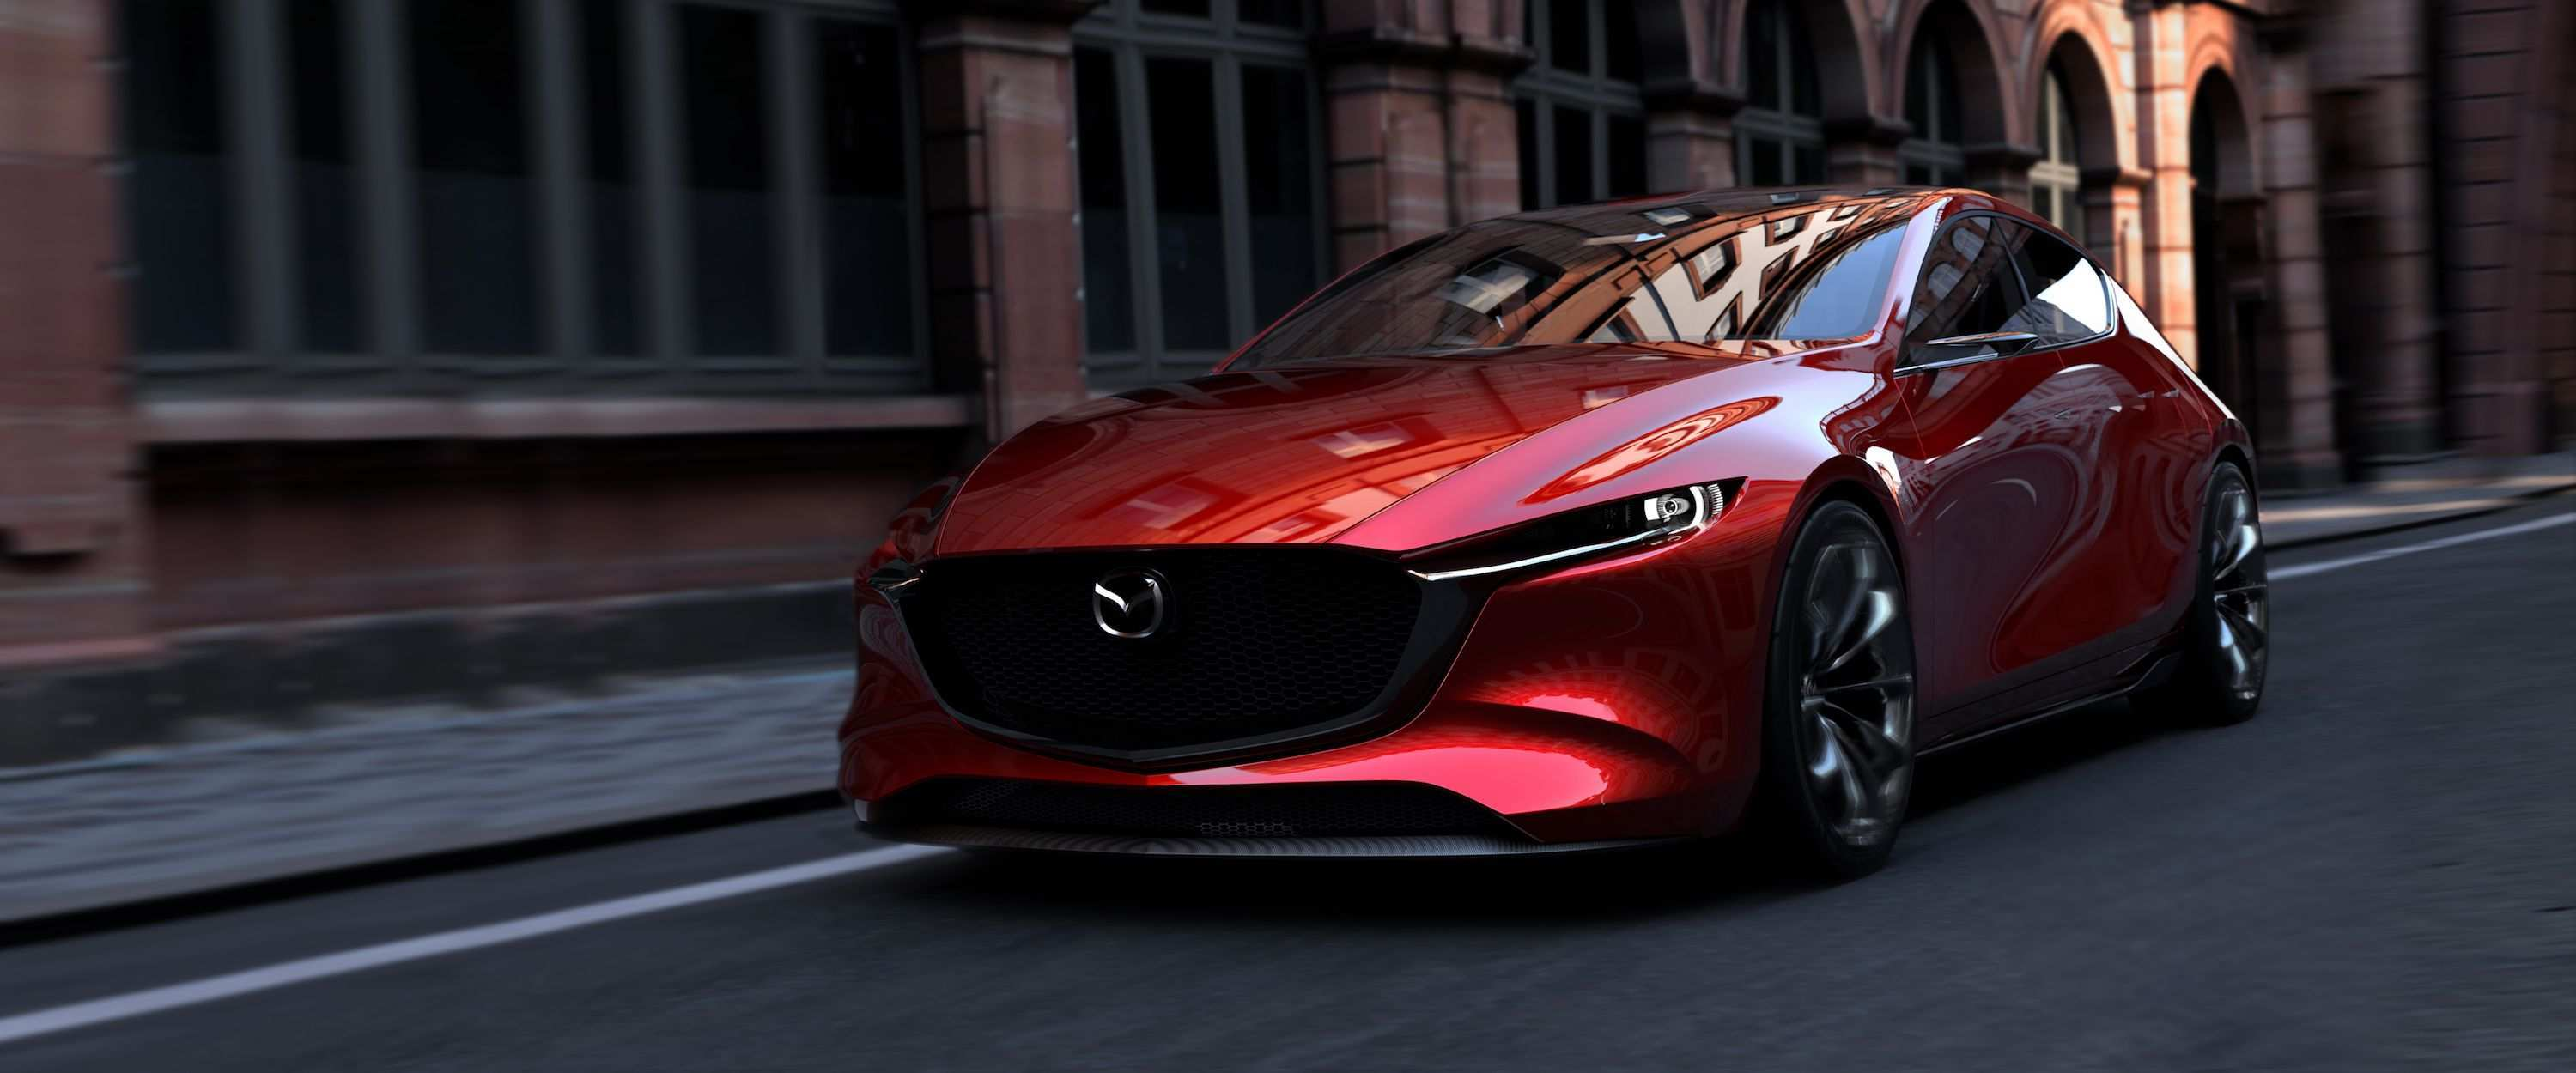 65 All New Mazda Kai 2020 Redesign with Mazda Kai 2020